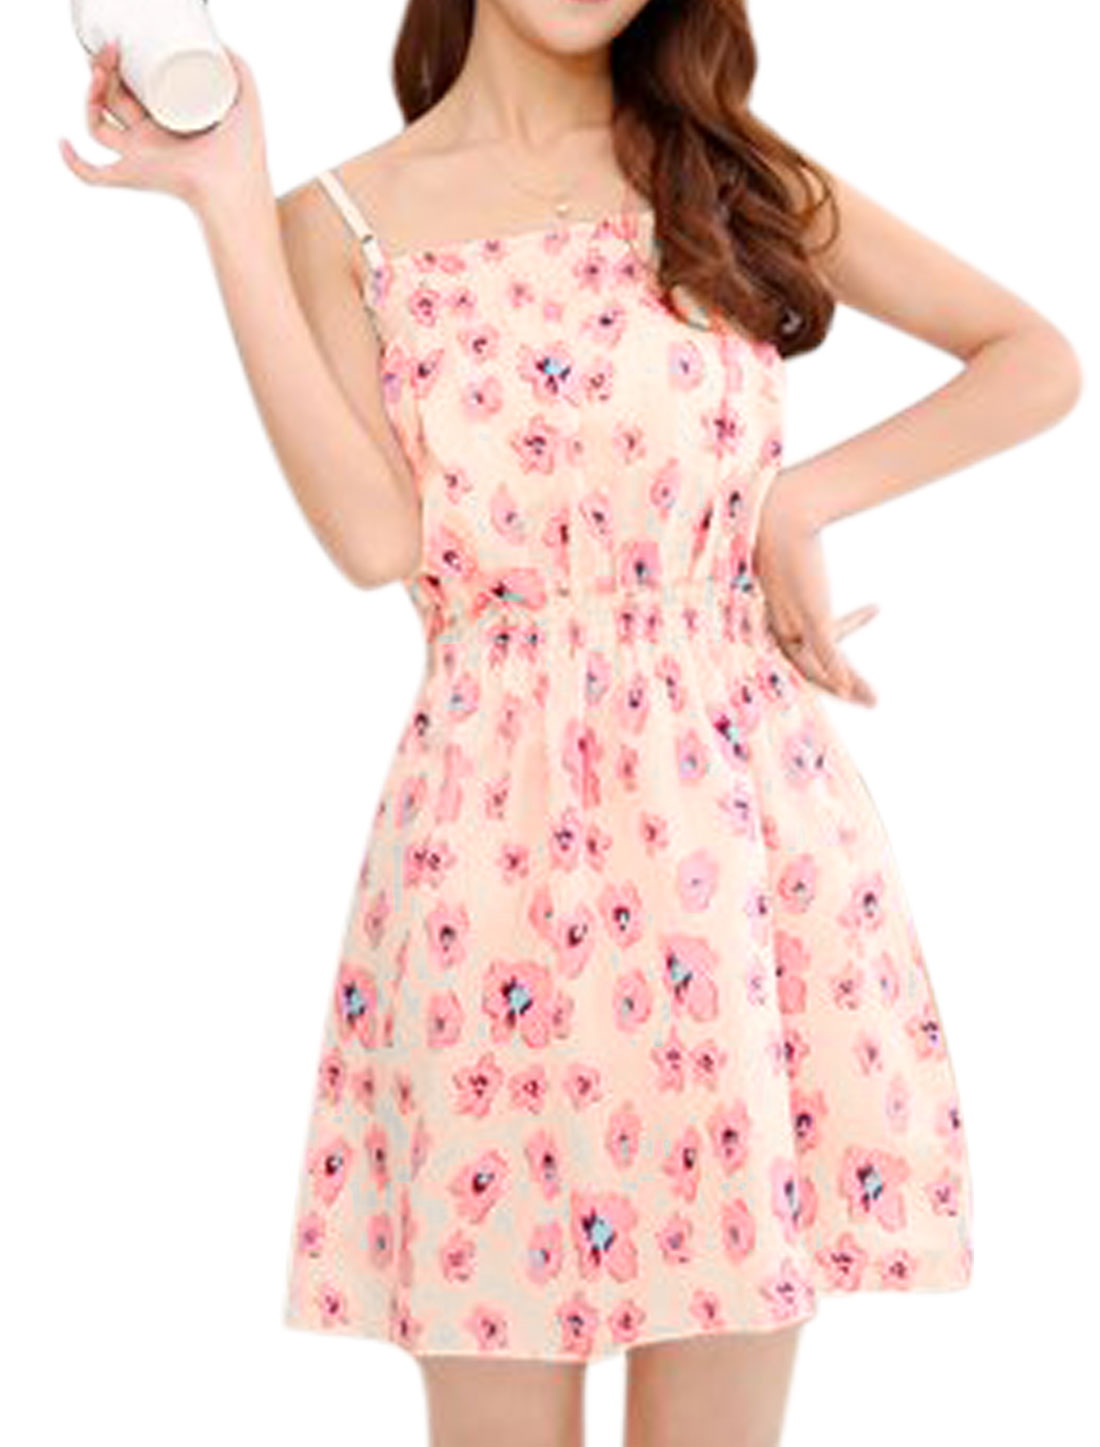 Ladies Floral Print Spaghetti Strap Unlined Tunic Dresses Beige Pink XS